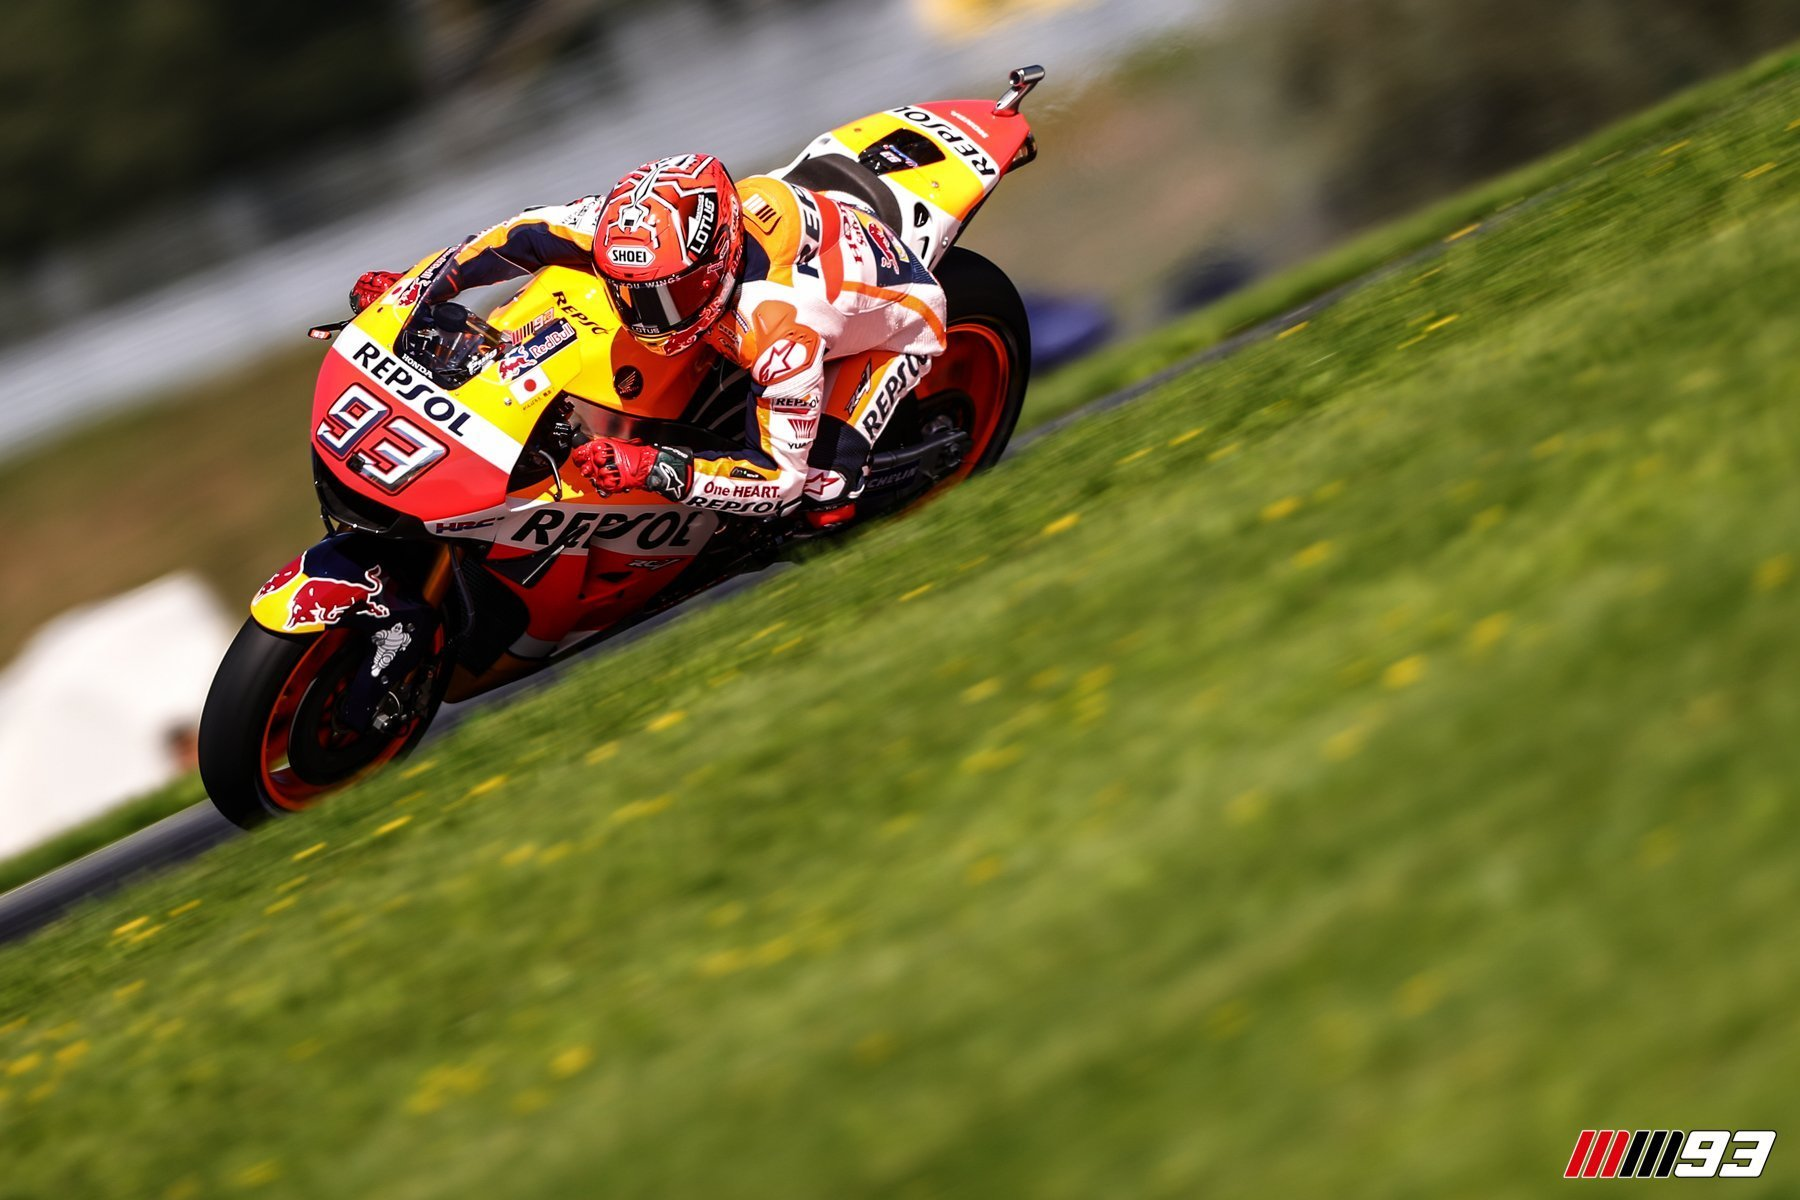 Marc Marquez wants to step again into the podium at Brno - Fan Club Marc Márquez